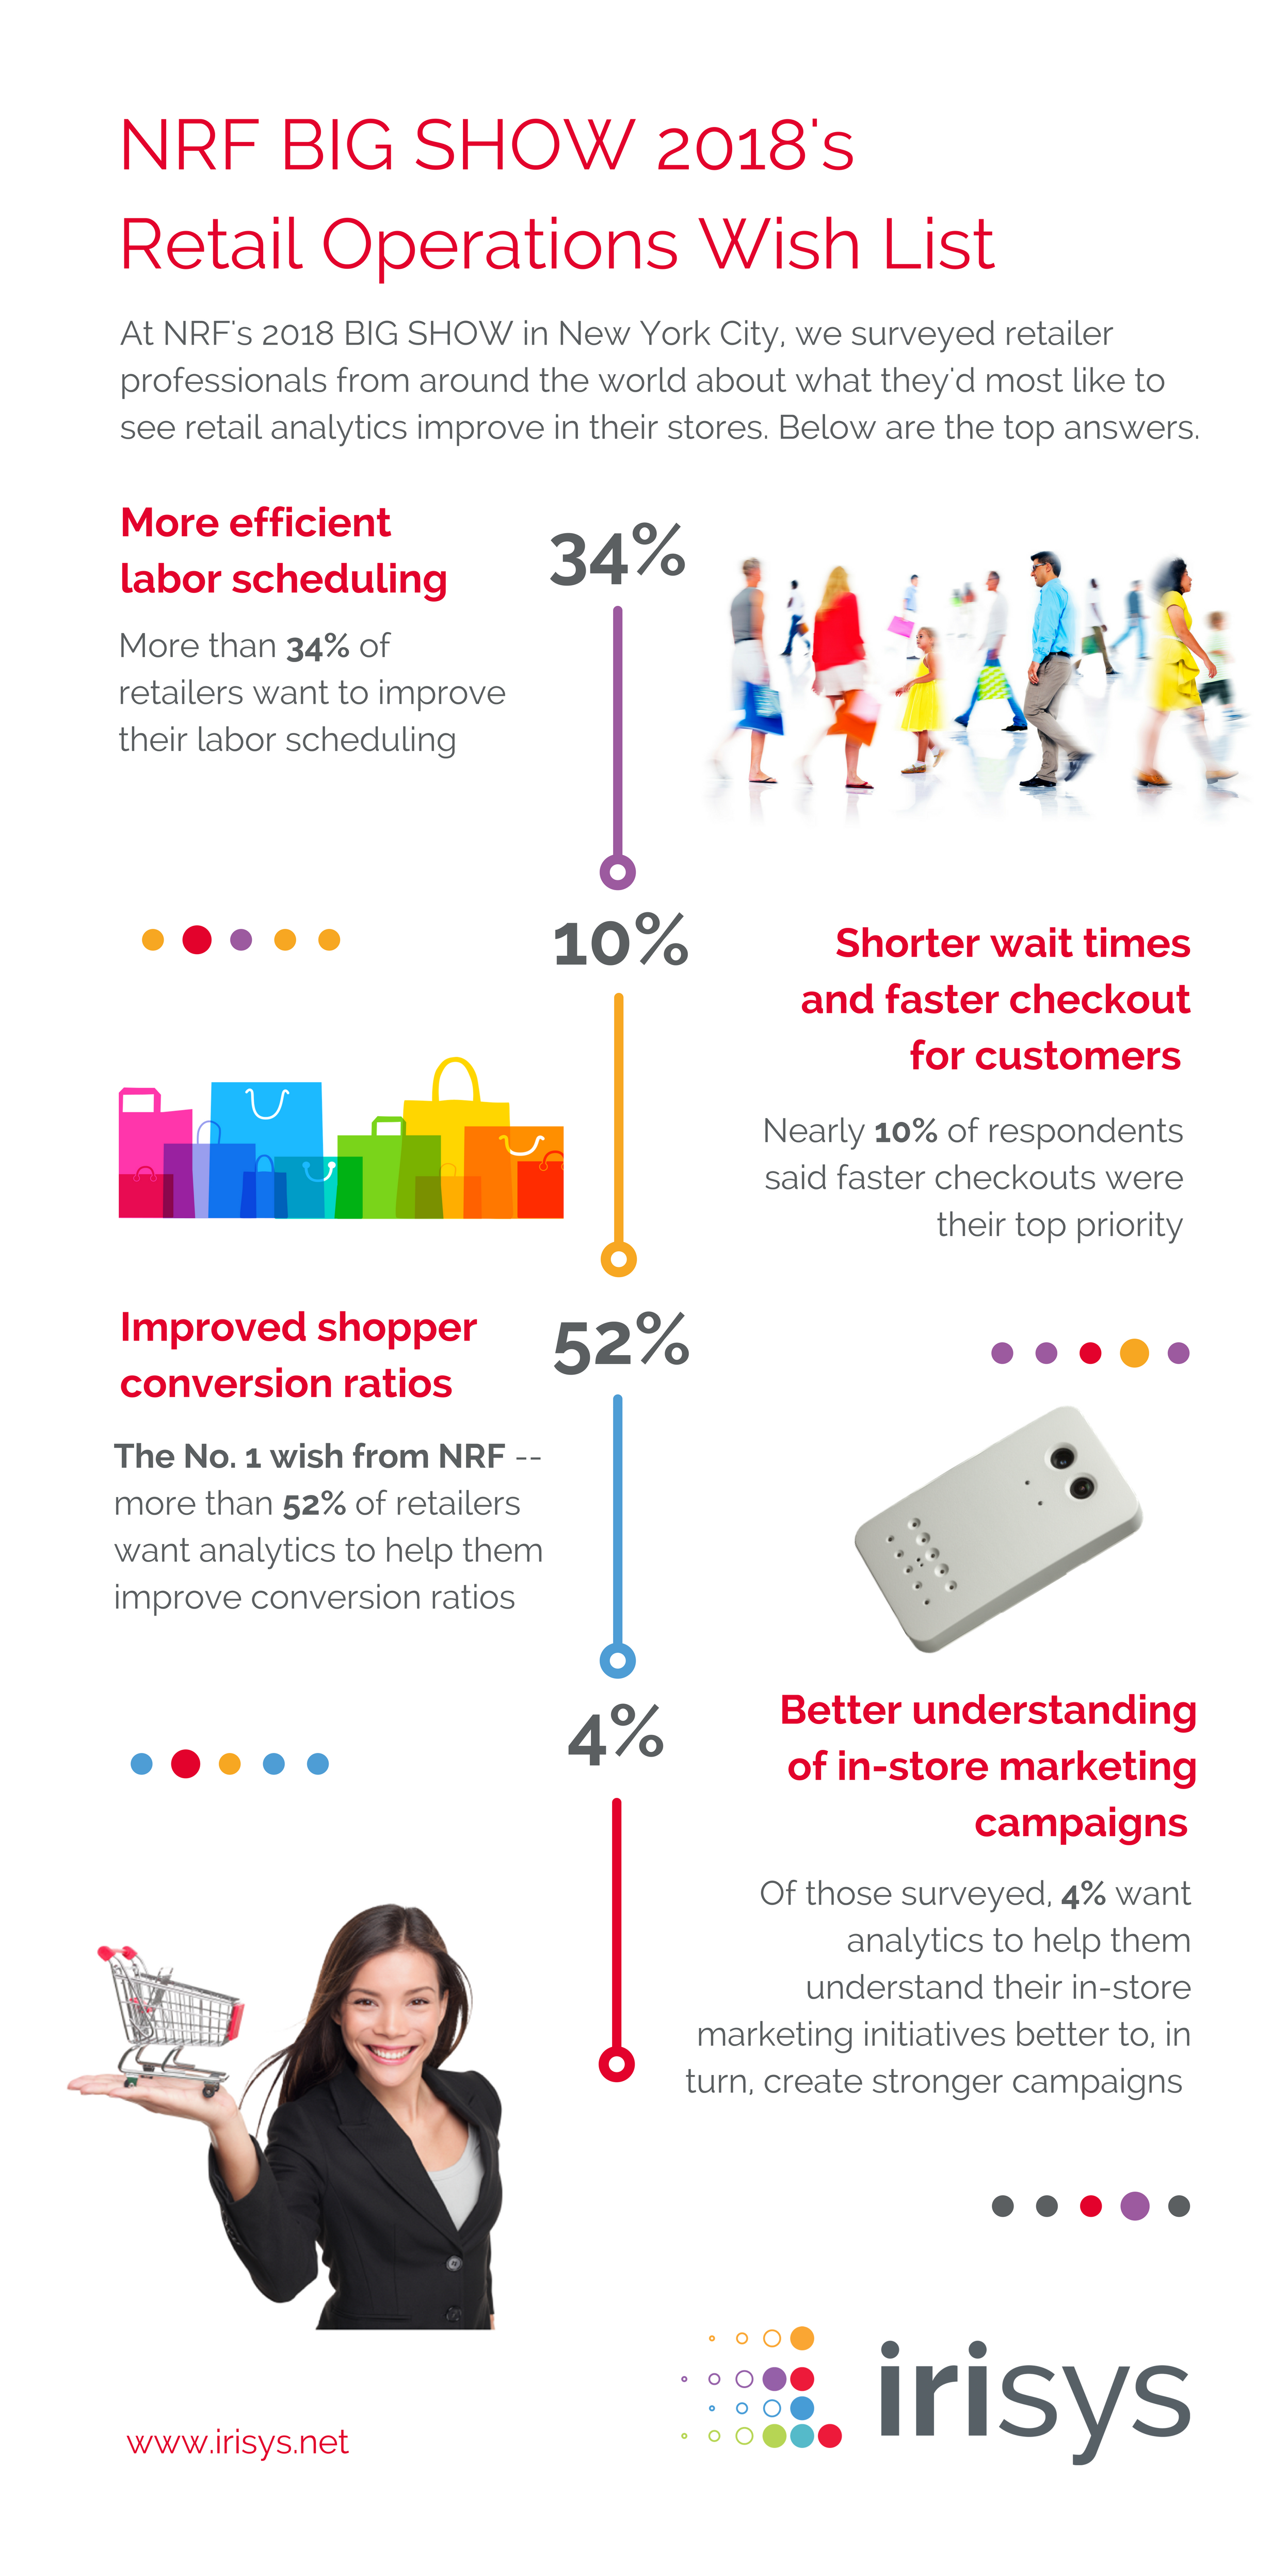 Post-NRF 2018 On-stand Infographic FINAL 2.5.2018.png